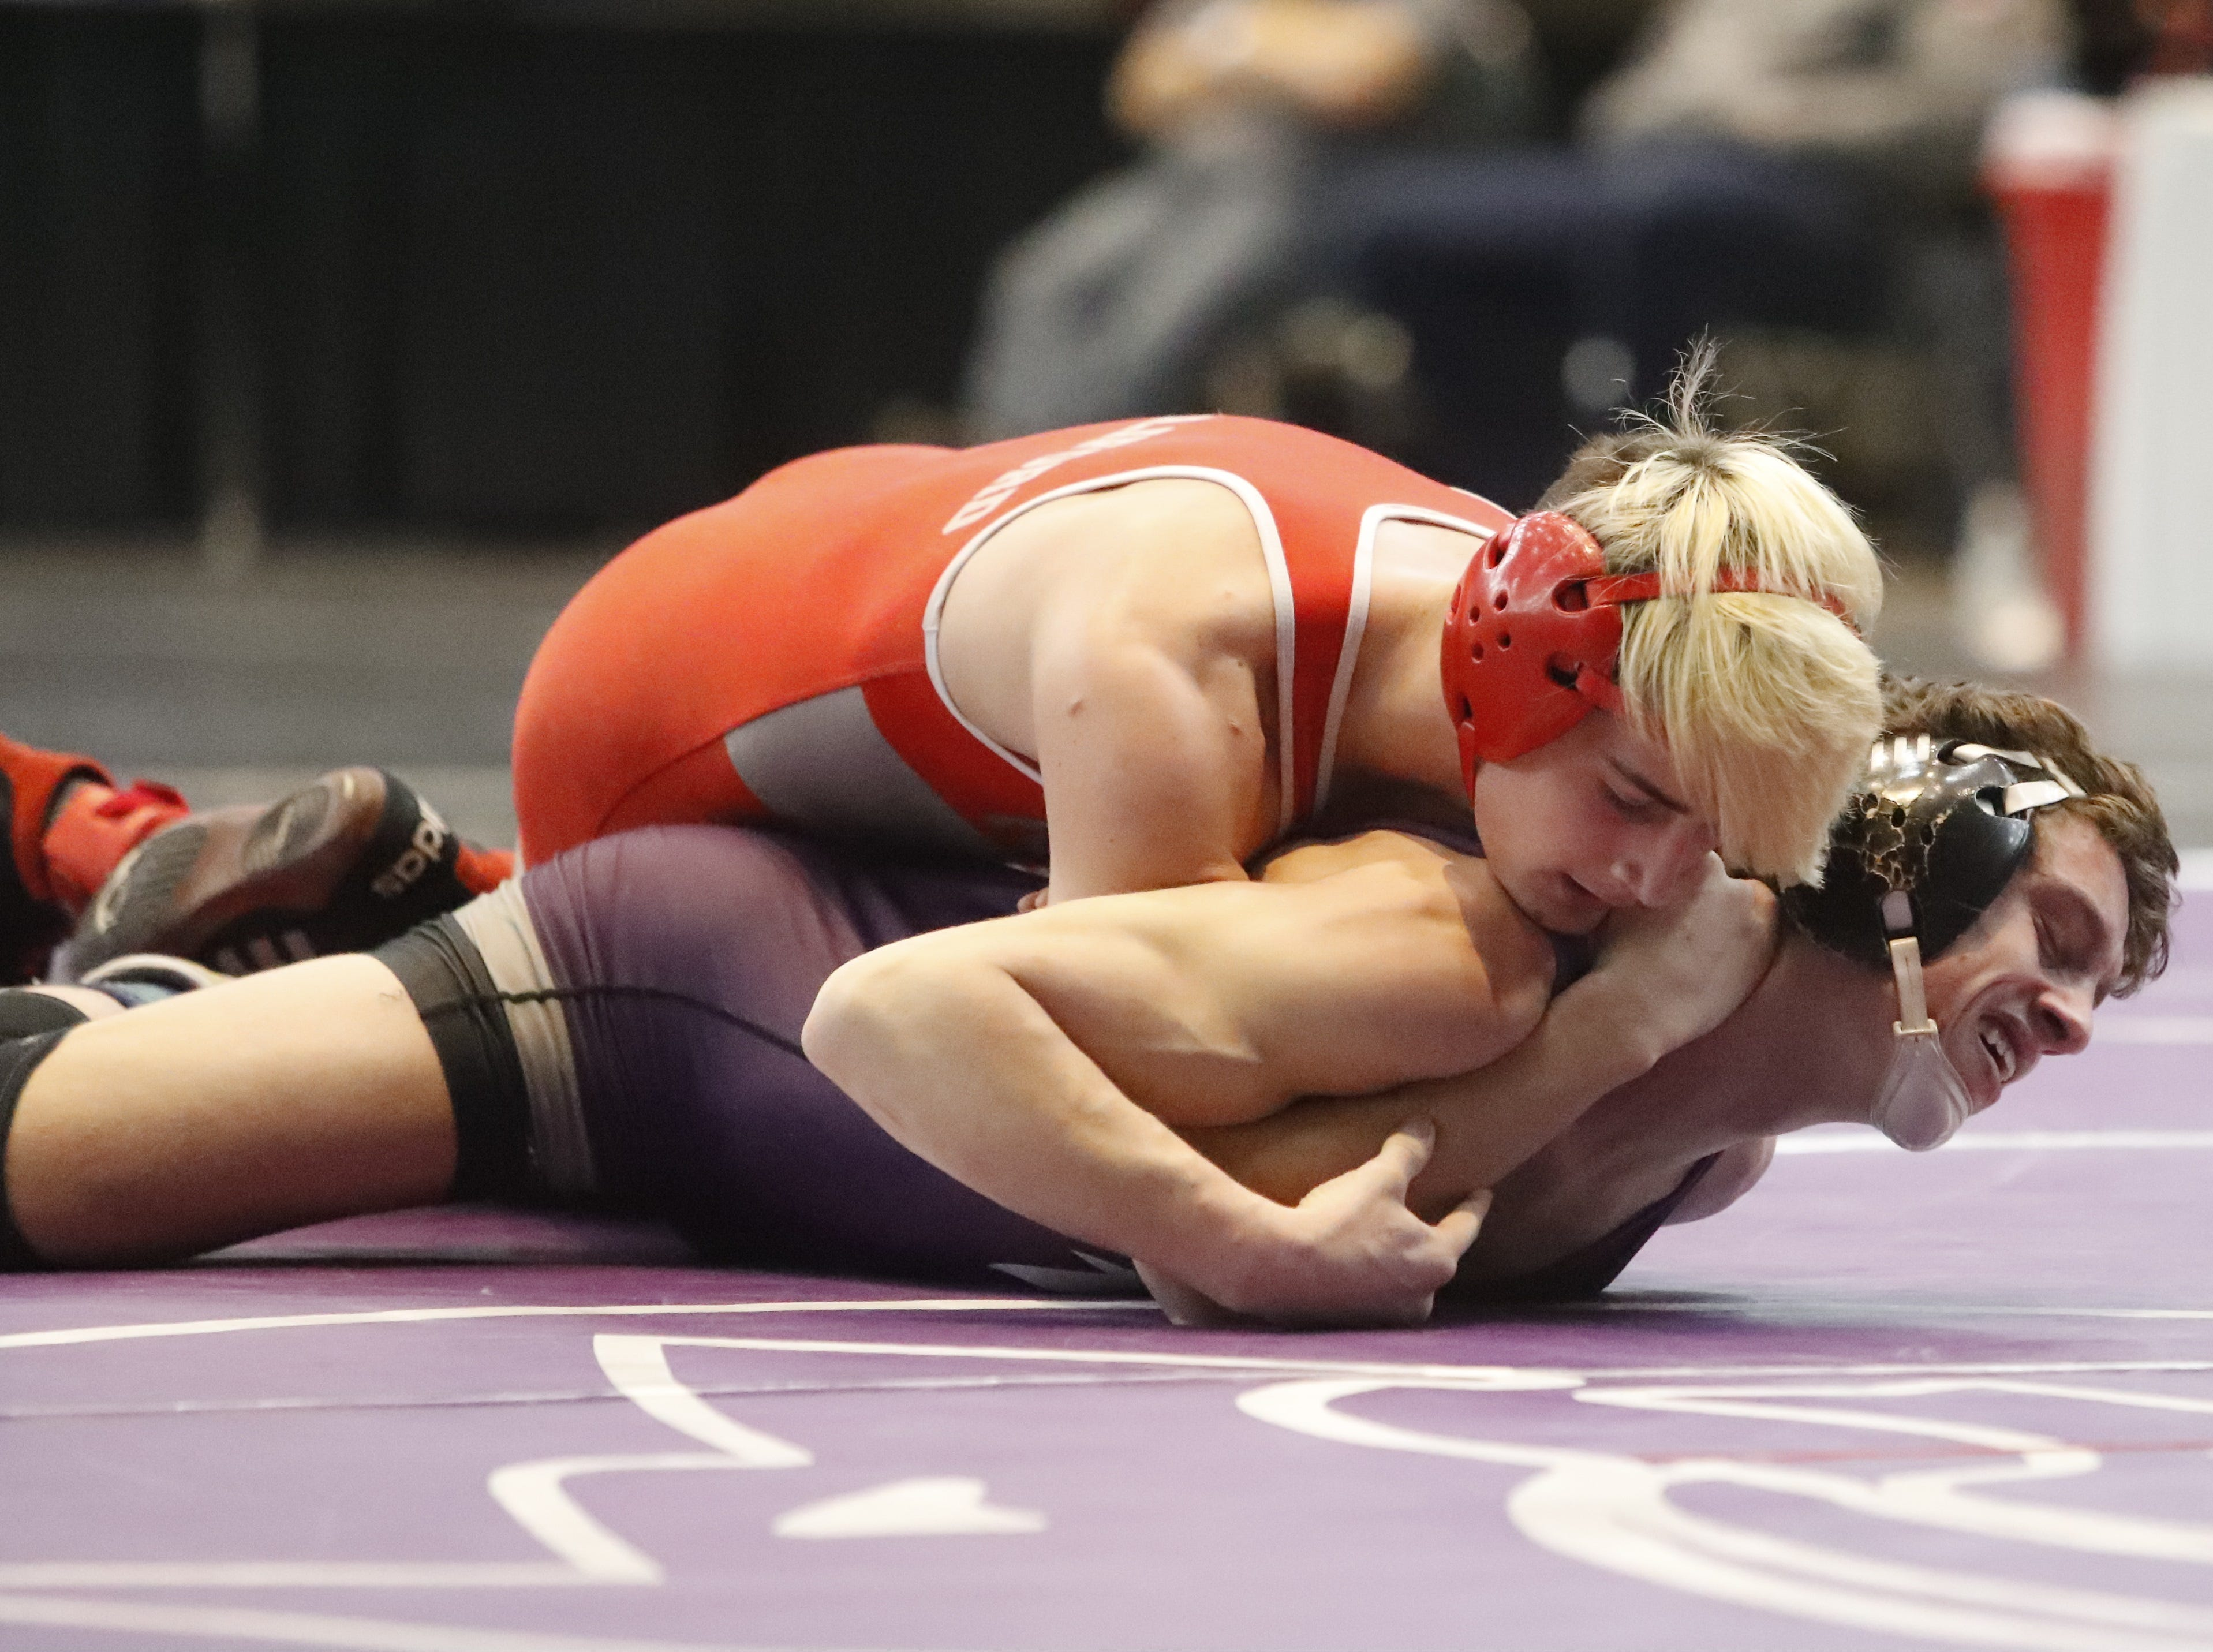 Foothill's Corey Williford (above) grapples with Shasta's Aydin Facey in the 152-pound championship semifinals of the Northern Section Masters meet on Friday, Feb. 15, at the Redding Civic Auditorium.